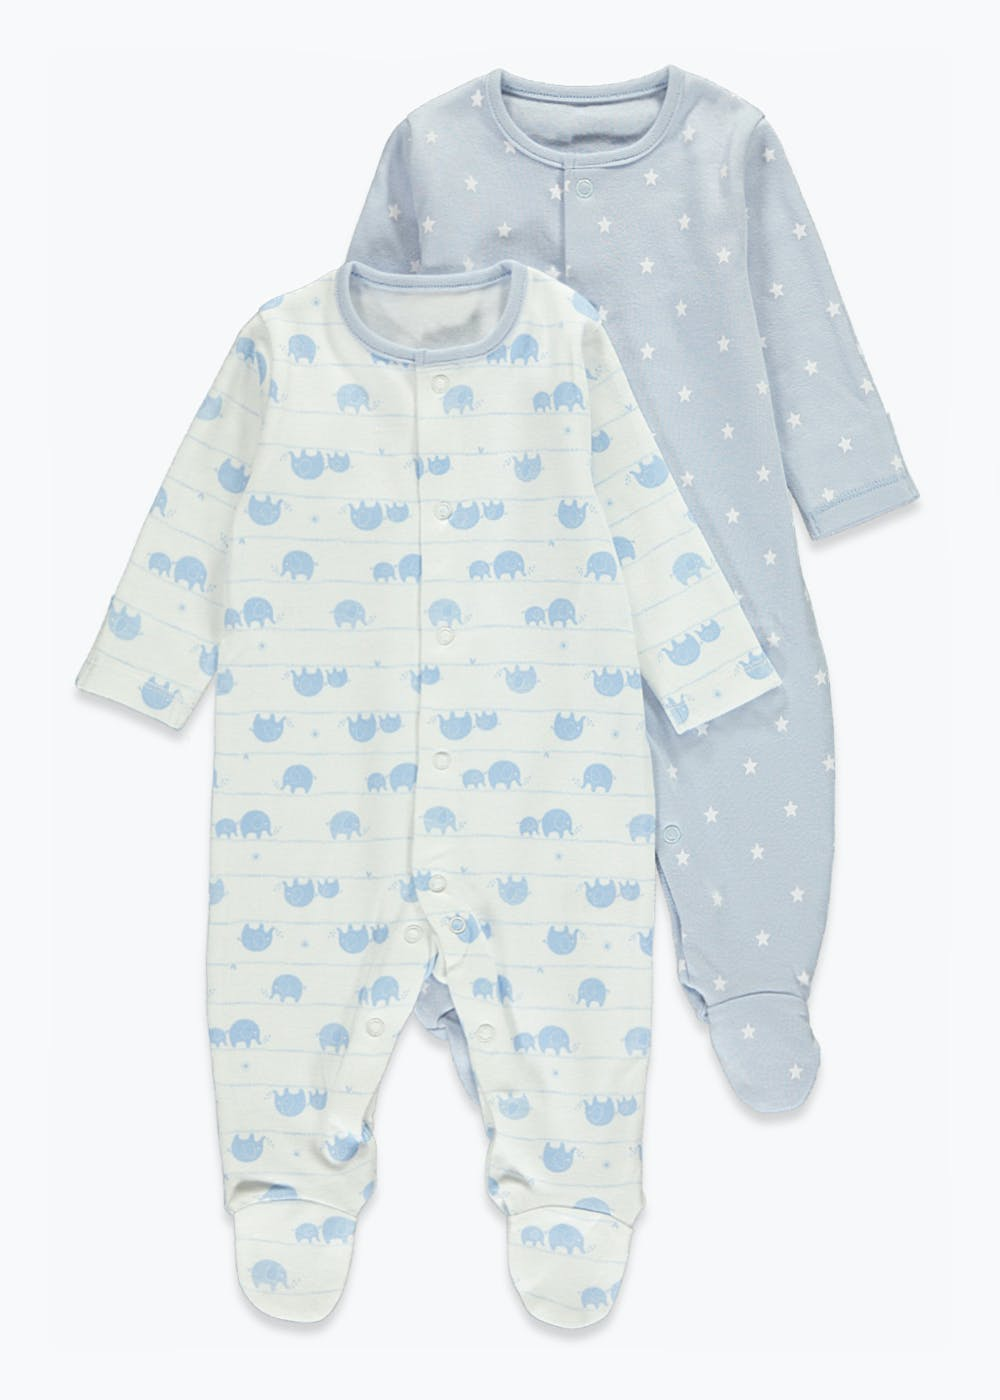 Unisex 2 Pack Elephant Print Baby Grows (Tiny Baby-23mths) – Blue